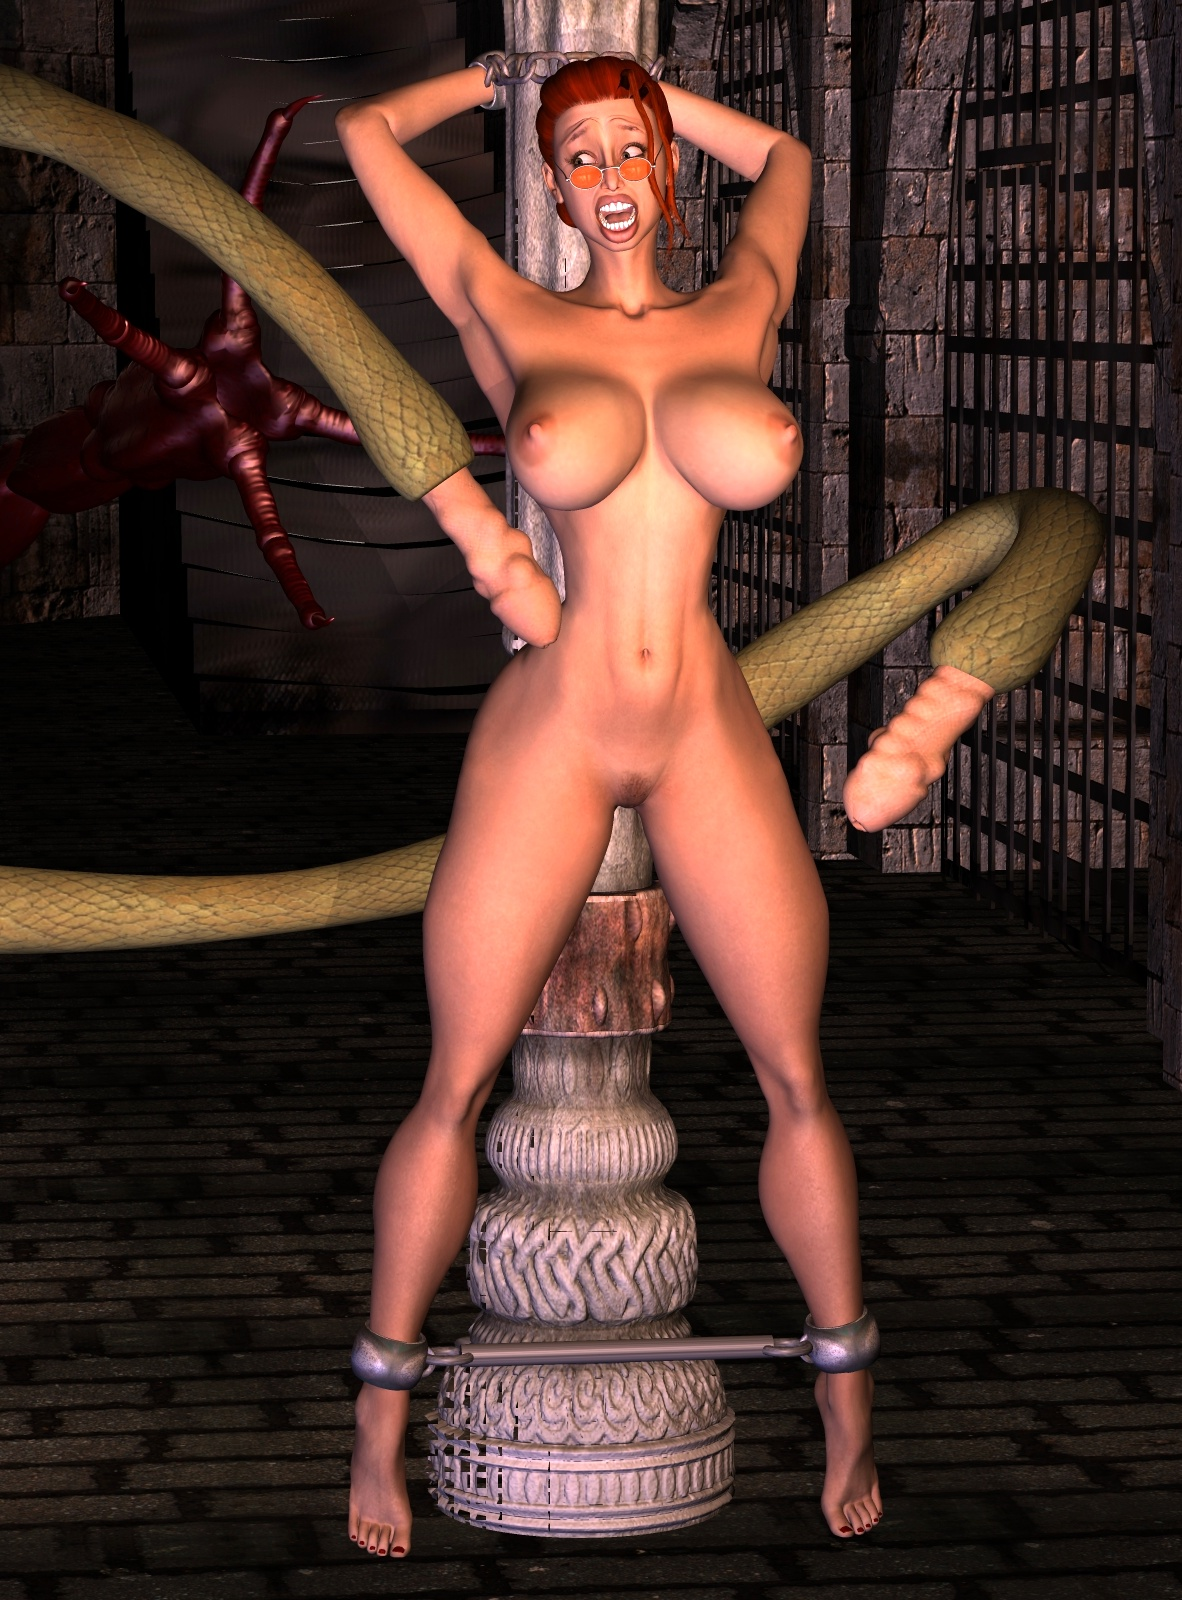 Tomb raider hentai pic tentacle hardcore tube